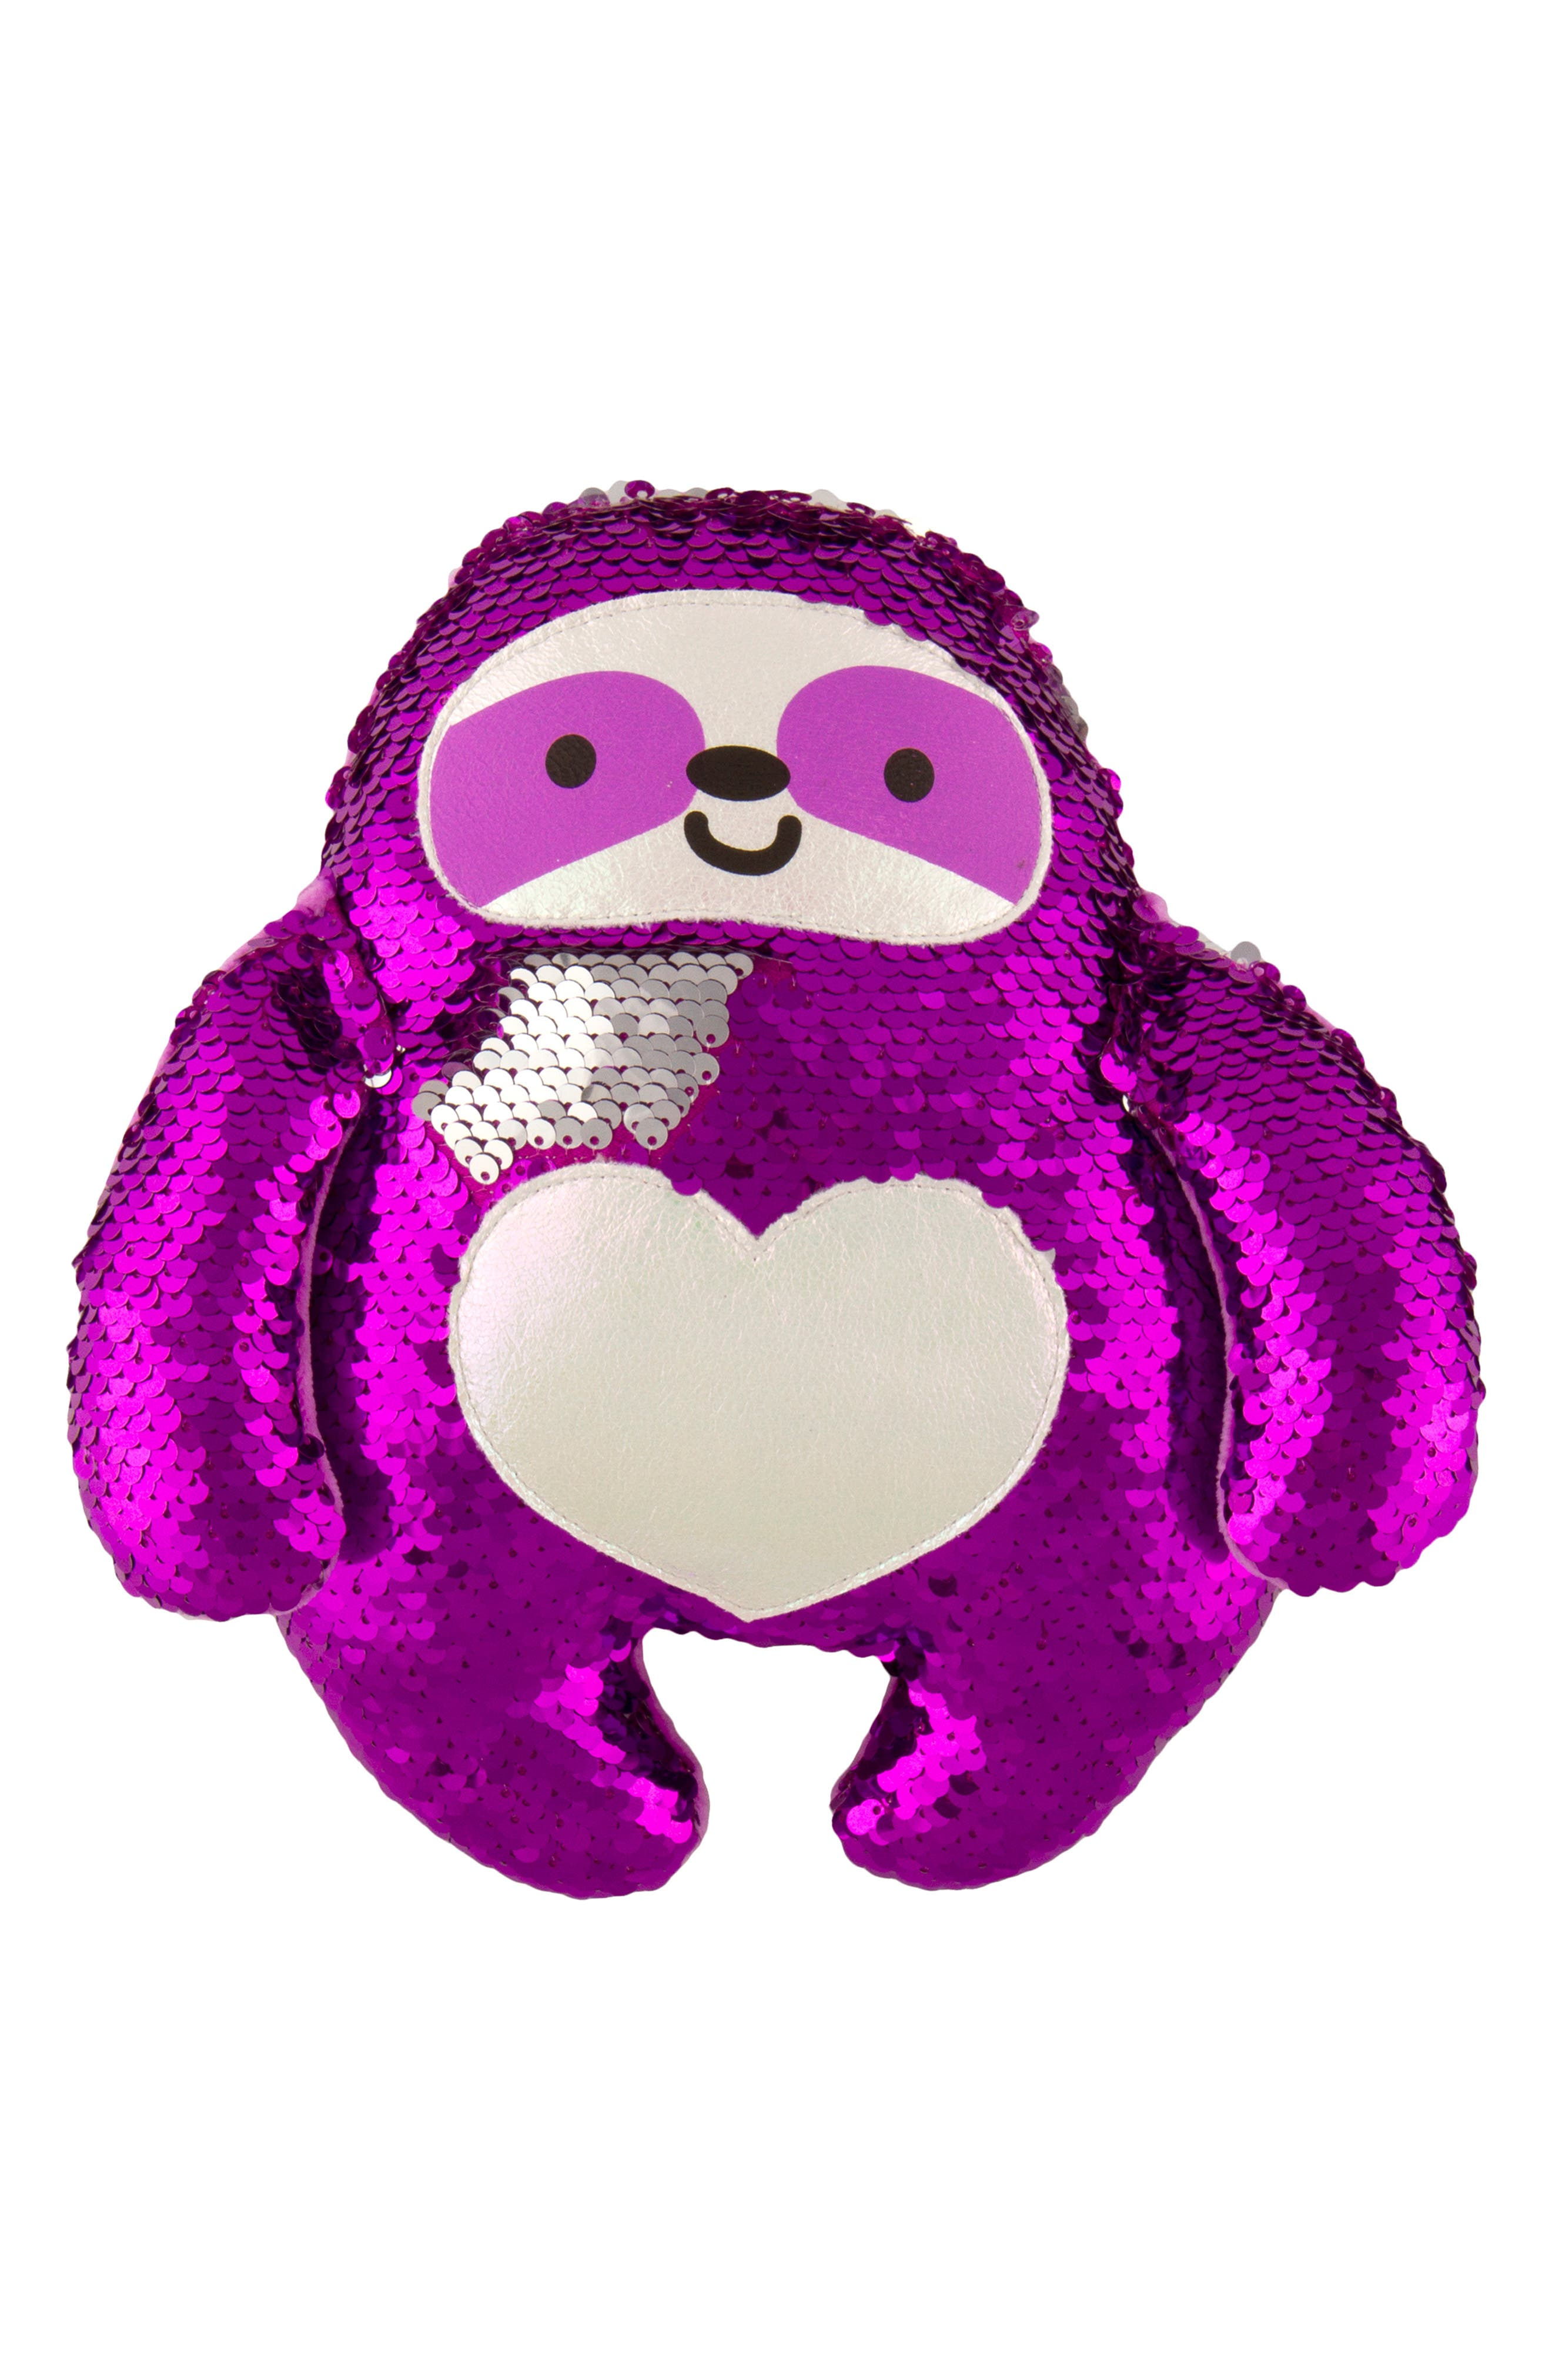 FASHION ANGELS Magic Sequin Sloth Stuffed Animal, Main, color, PURPLE